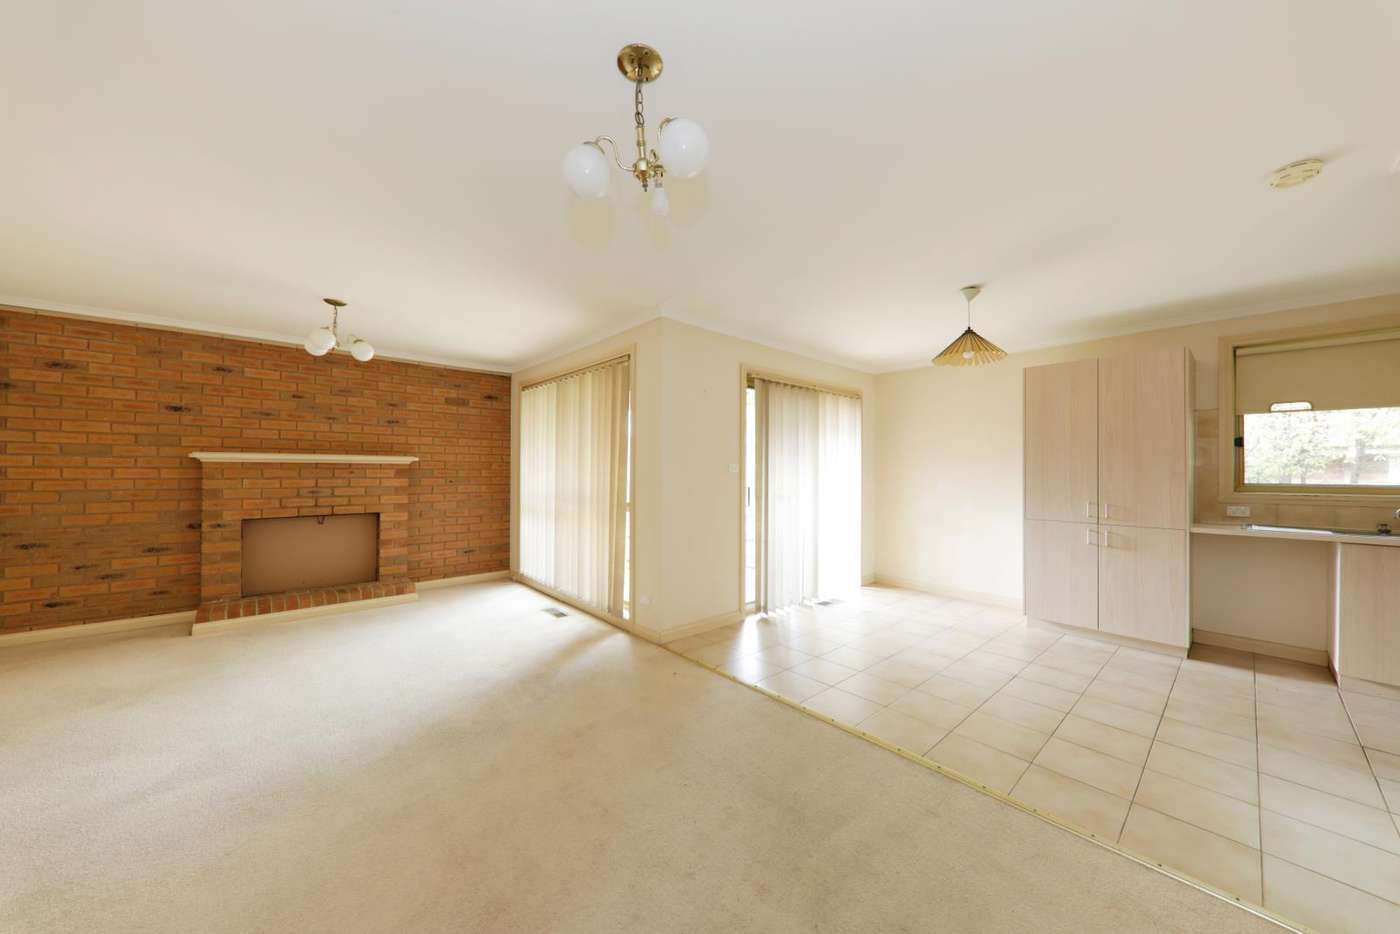 Sixth view of Homely unit listing, 1/497 Waverley Rd, Mount Waverley VIC 3149